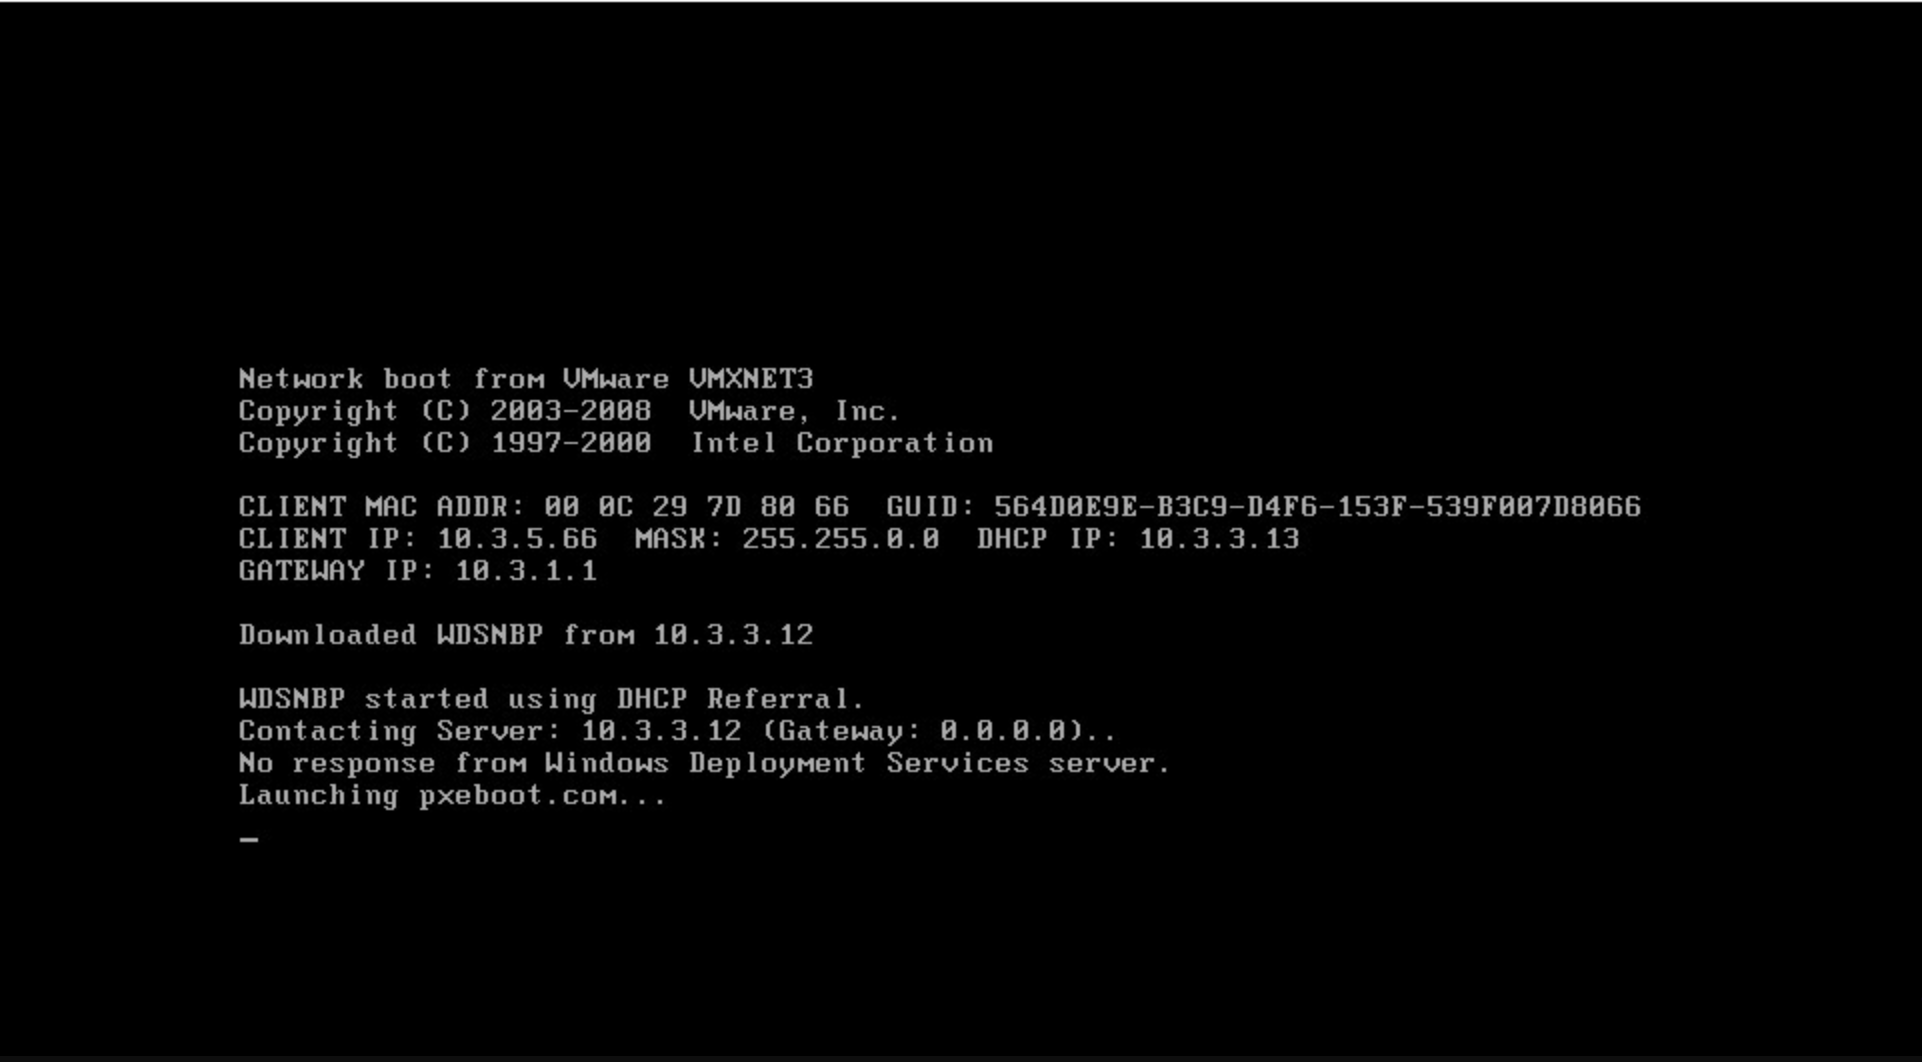 Photo of No response from Windows Deployment Services server